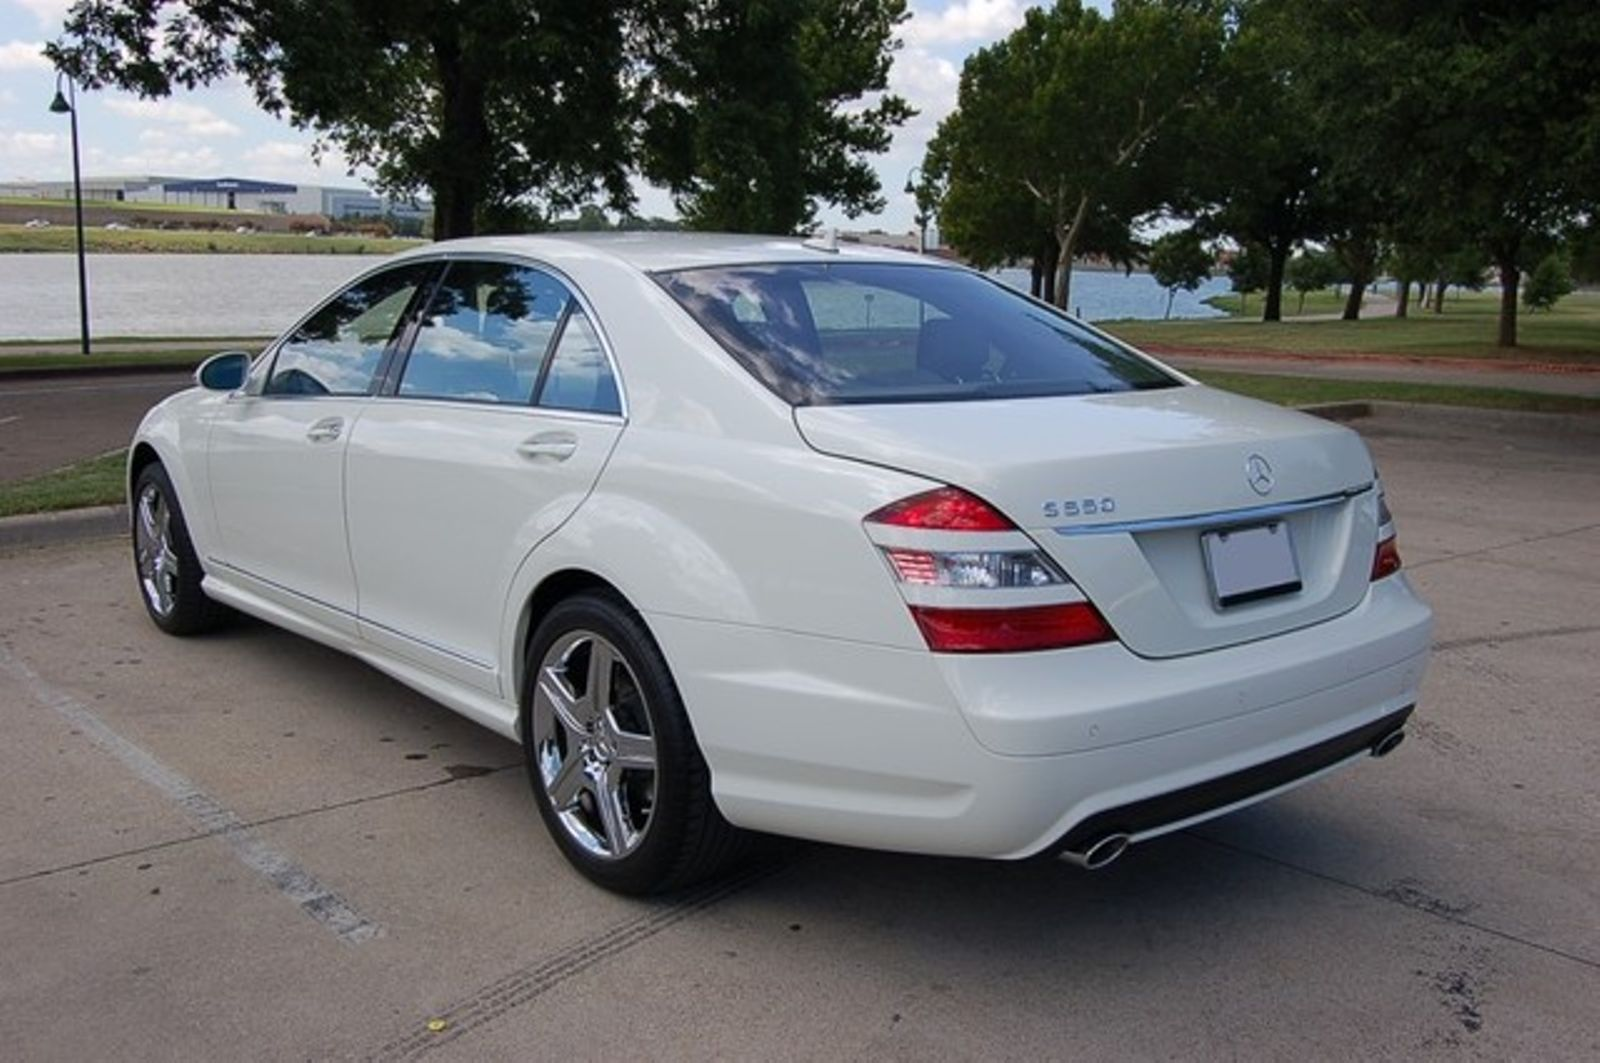 2008 mercedes benz s550 certified pre owned only 12k miles for Mercedes benz s550 certified pre owned